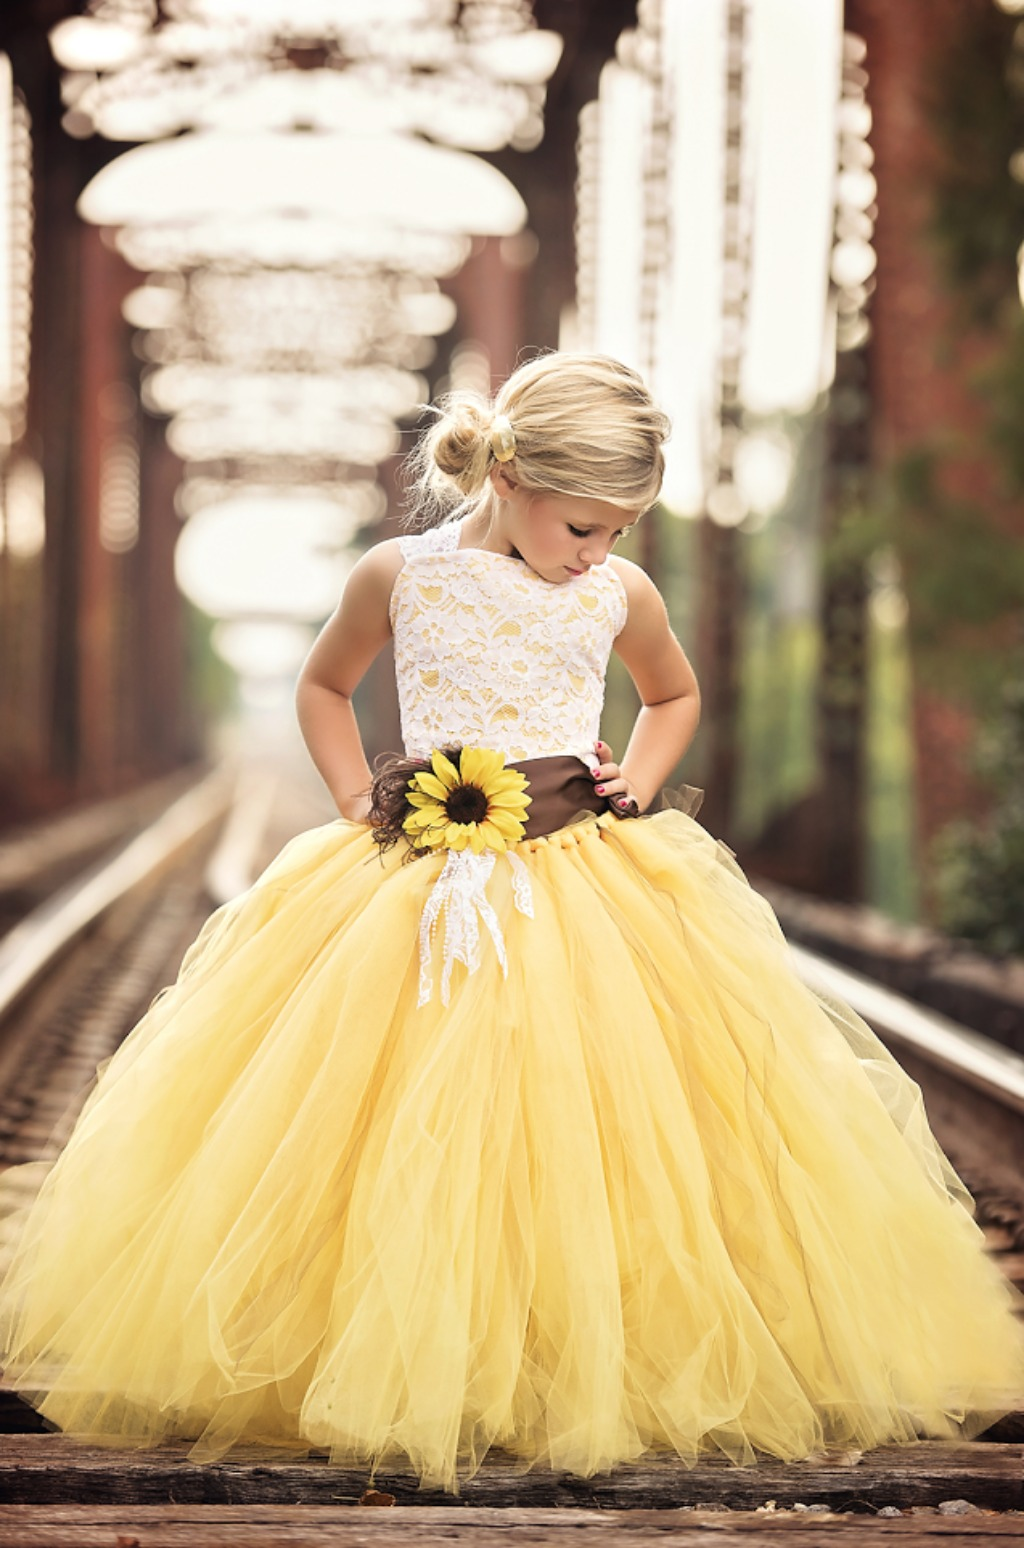 Summer to fall our sunflower dress is perfect for your wedding. Sash color is also available in navy, black, royal blue and white